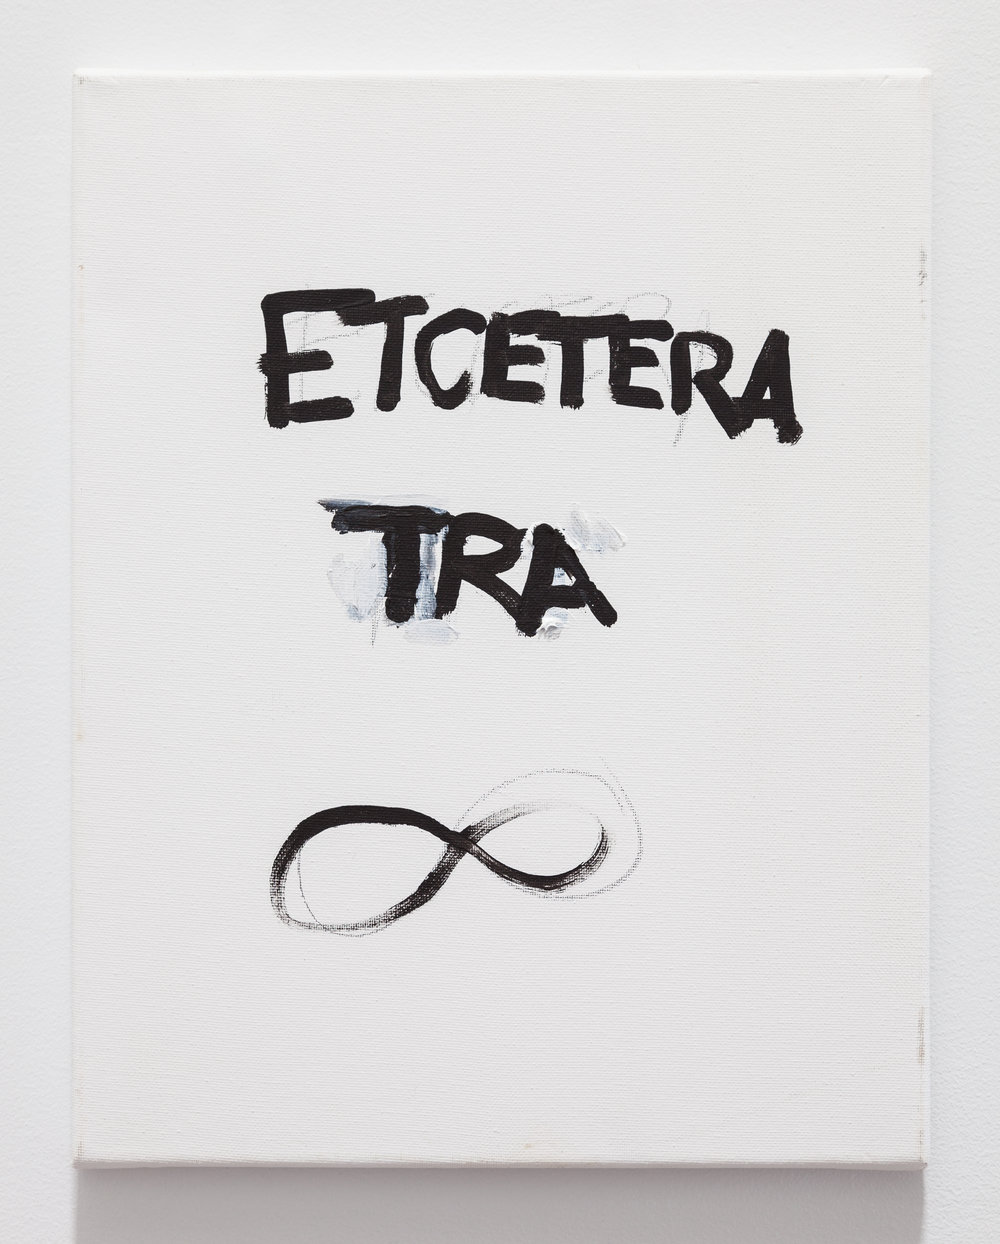 Gene Beery,  Et Cetera TRA , 2009, acrylic on canvas, 14 x 11 in